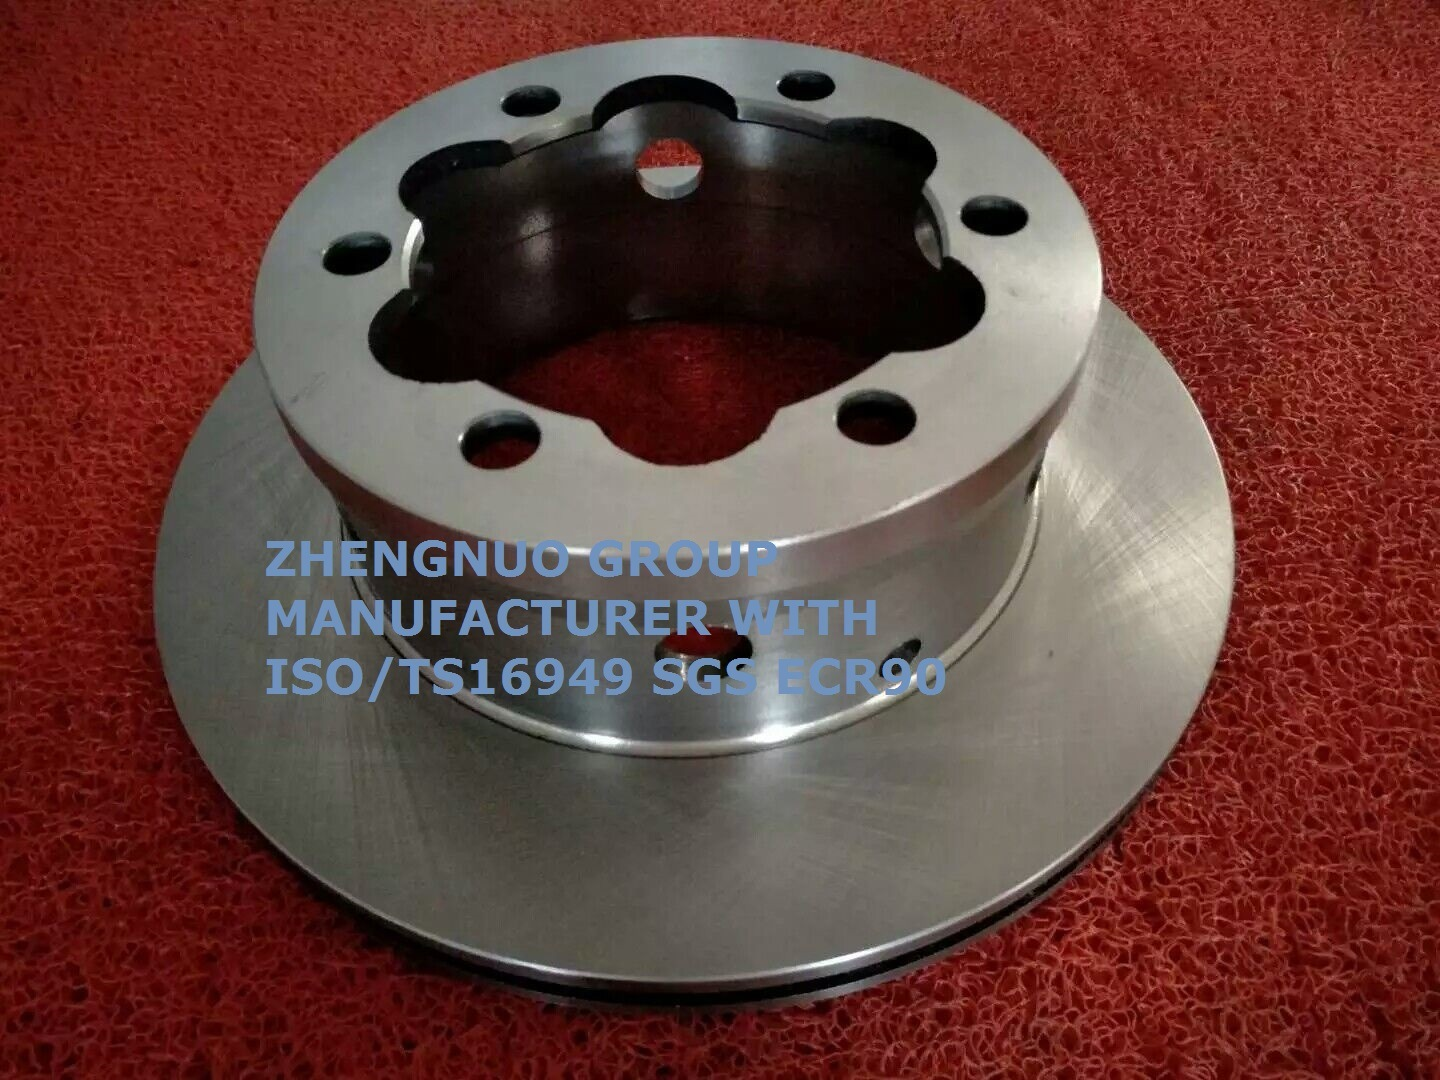 Competitive Price and High Quality Brake Discs/Rotors with Ts16949 Certificate